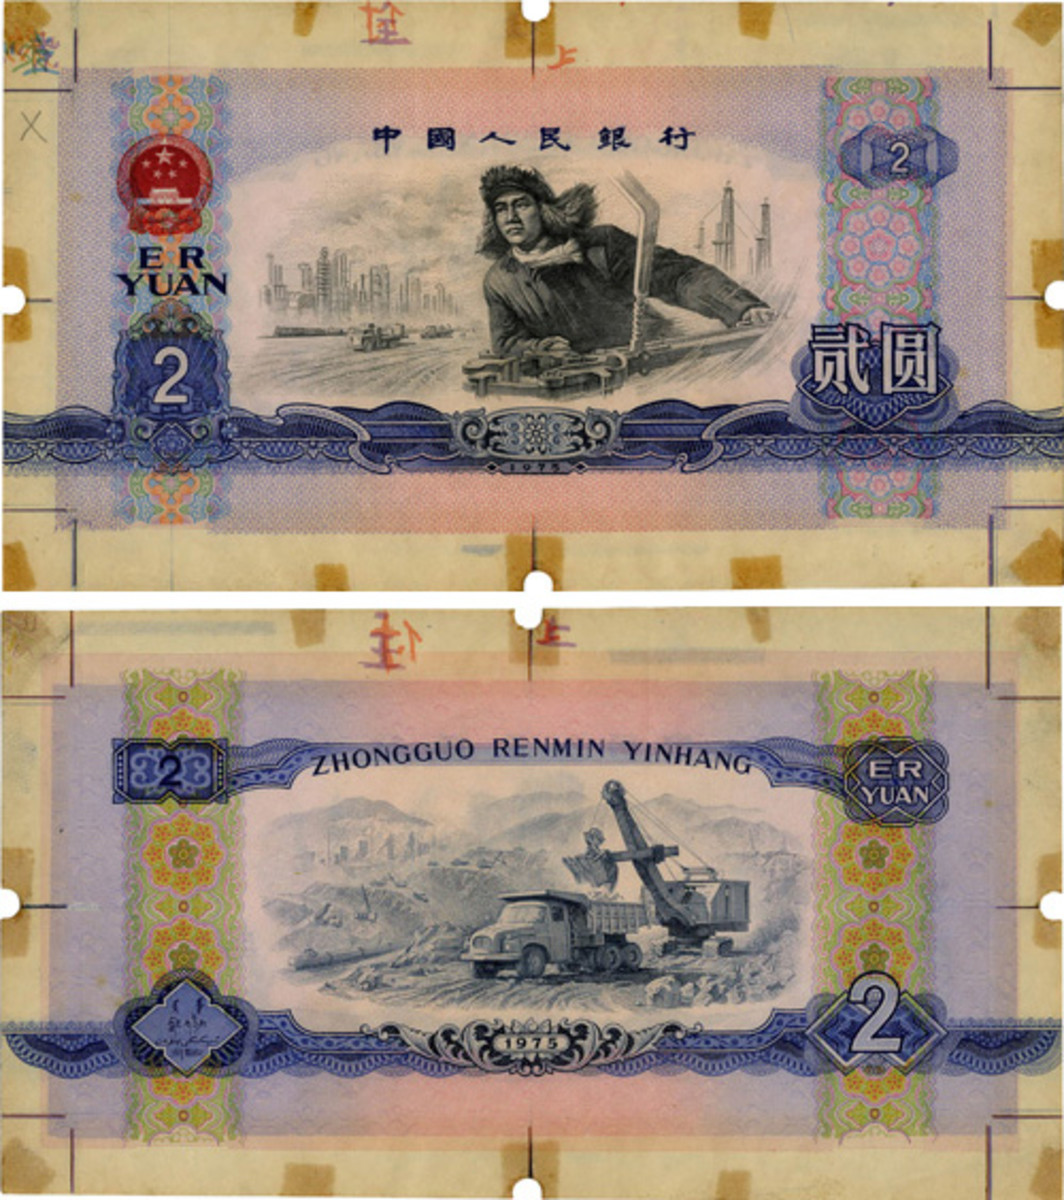 """""""Iron Man"""" Wang Jinxi, regarded as a hero in the People's Republic of China for his work in 1960 at the Daqing Oil Field, appears on the front of this 1975 2-yuan proof note from China. It sold for $240,000 in Stack's Bowers' March 25 paper money auction held in Hong Kong."""